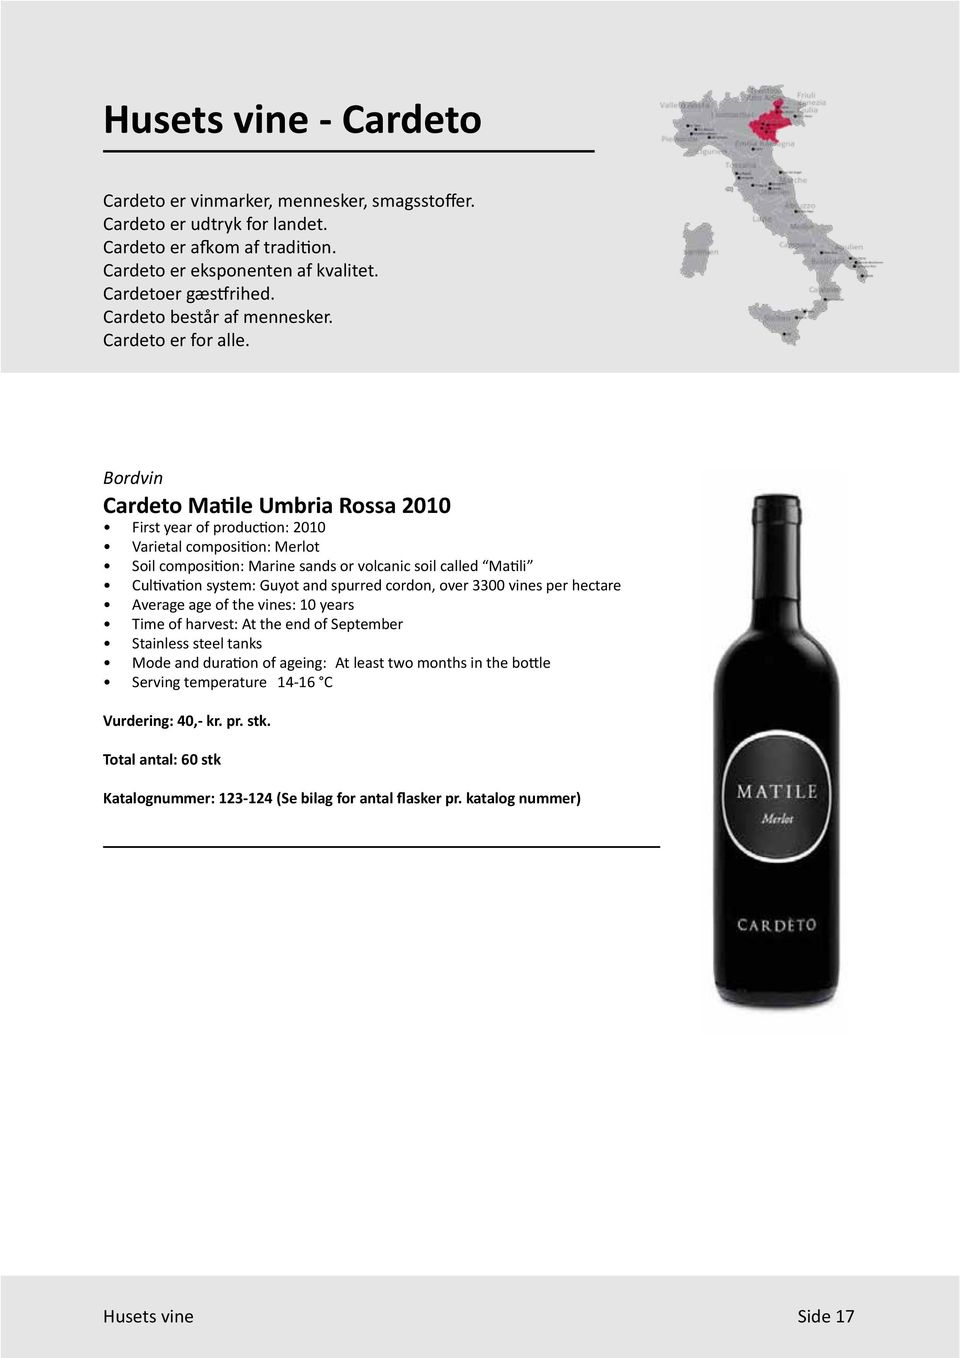 Bordvin Cardeto Matile Umbria Rossa 2010 First year of production: 2010 Varietal composition: Merlot Soil composition: Marine sands or volcanic soil called Matili Cultivation system: Guyot and